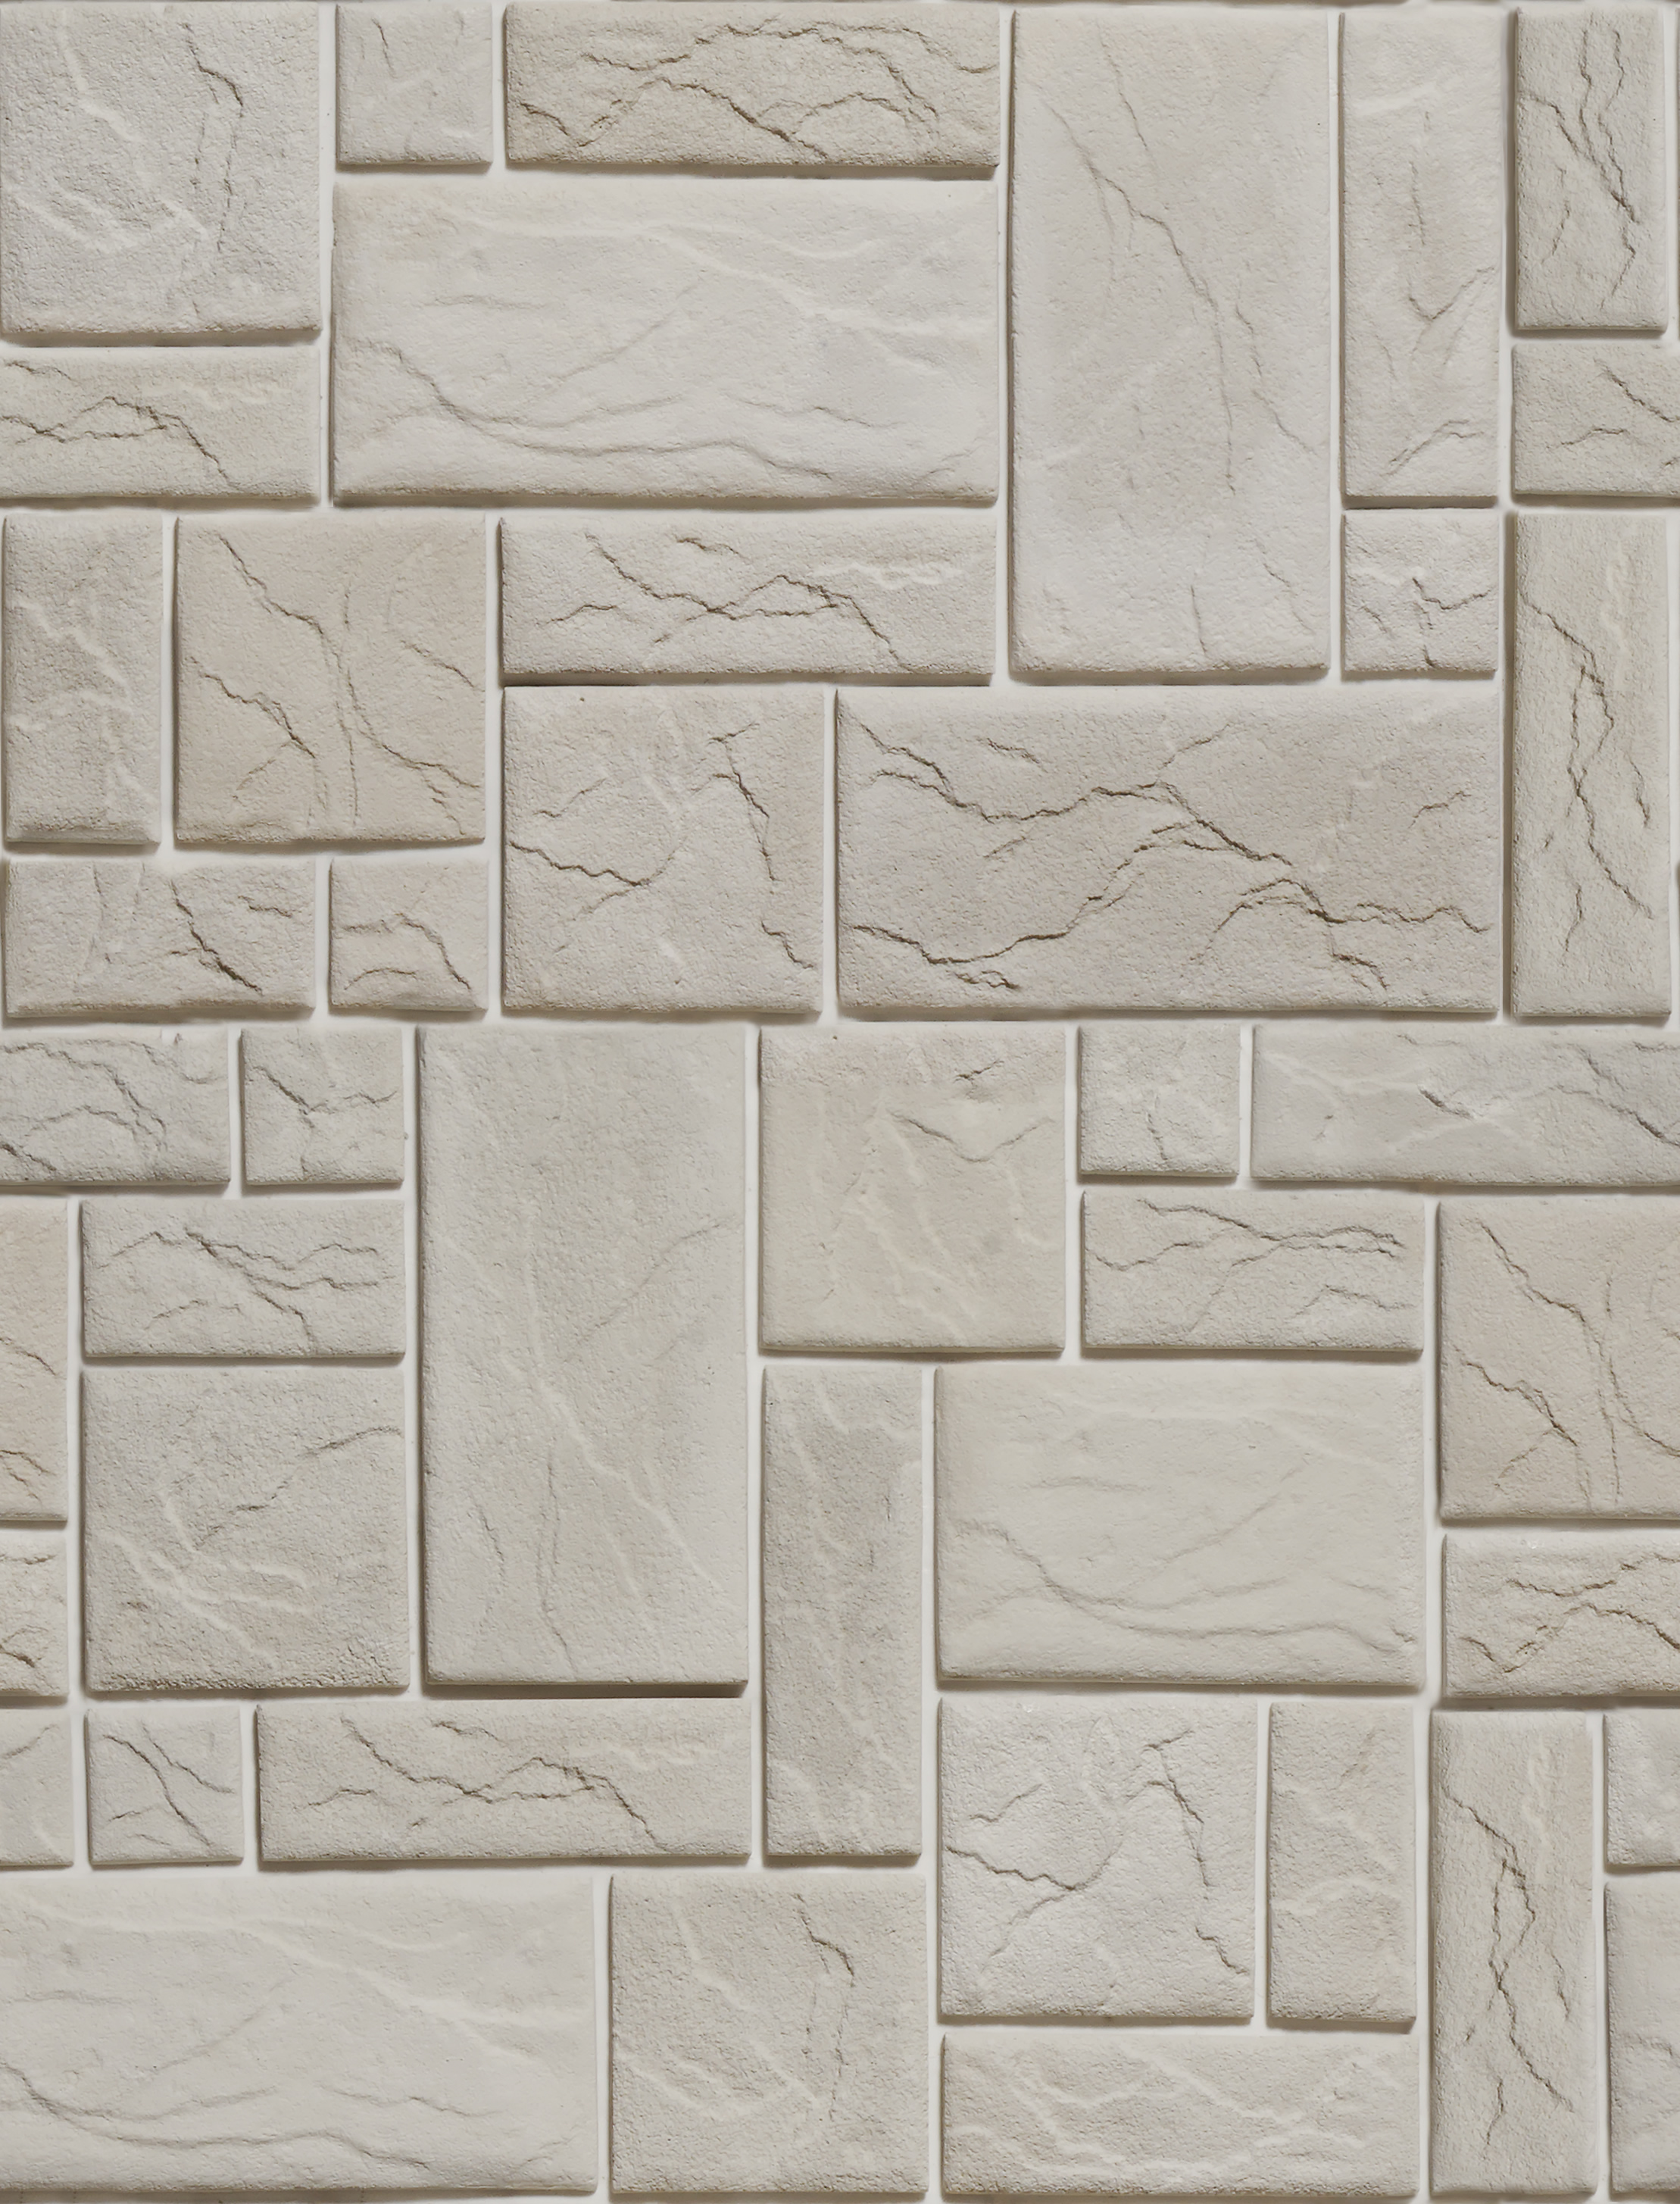 Stone Hewn Tile Texture Wall Download Photo Texture